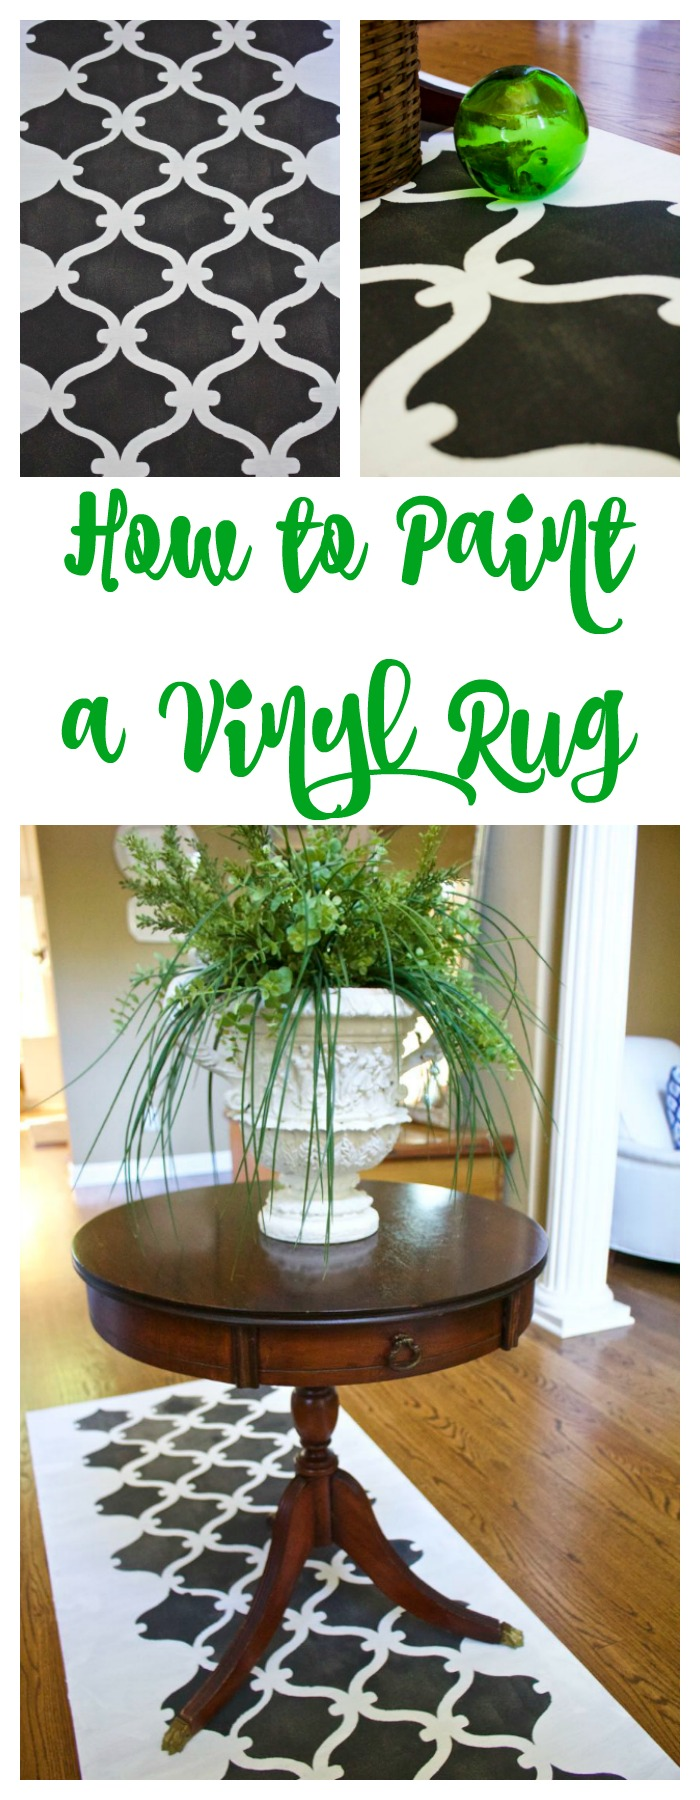 How To Paint Vinyl Bathroom Cabinets how to paint a vinyl rug - 2 bees in a pod